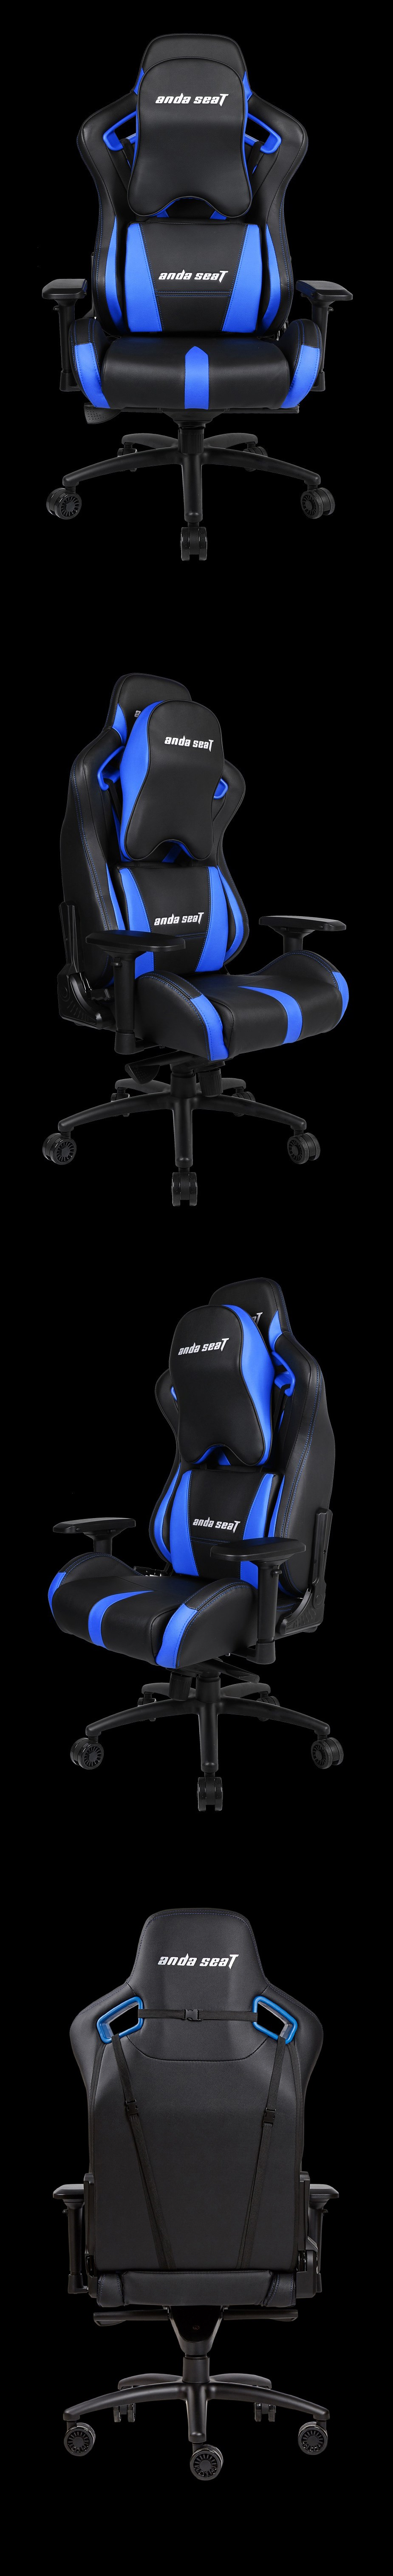 Anda Seat AD12-XL-03 v2 Gaming Chair - Black/Bliue - Desktop Overview 2